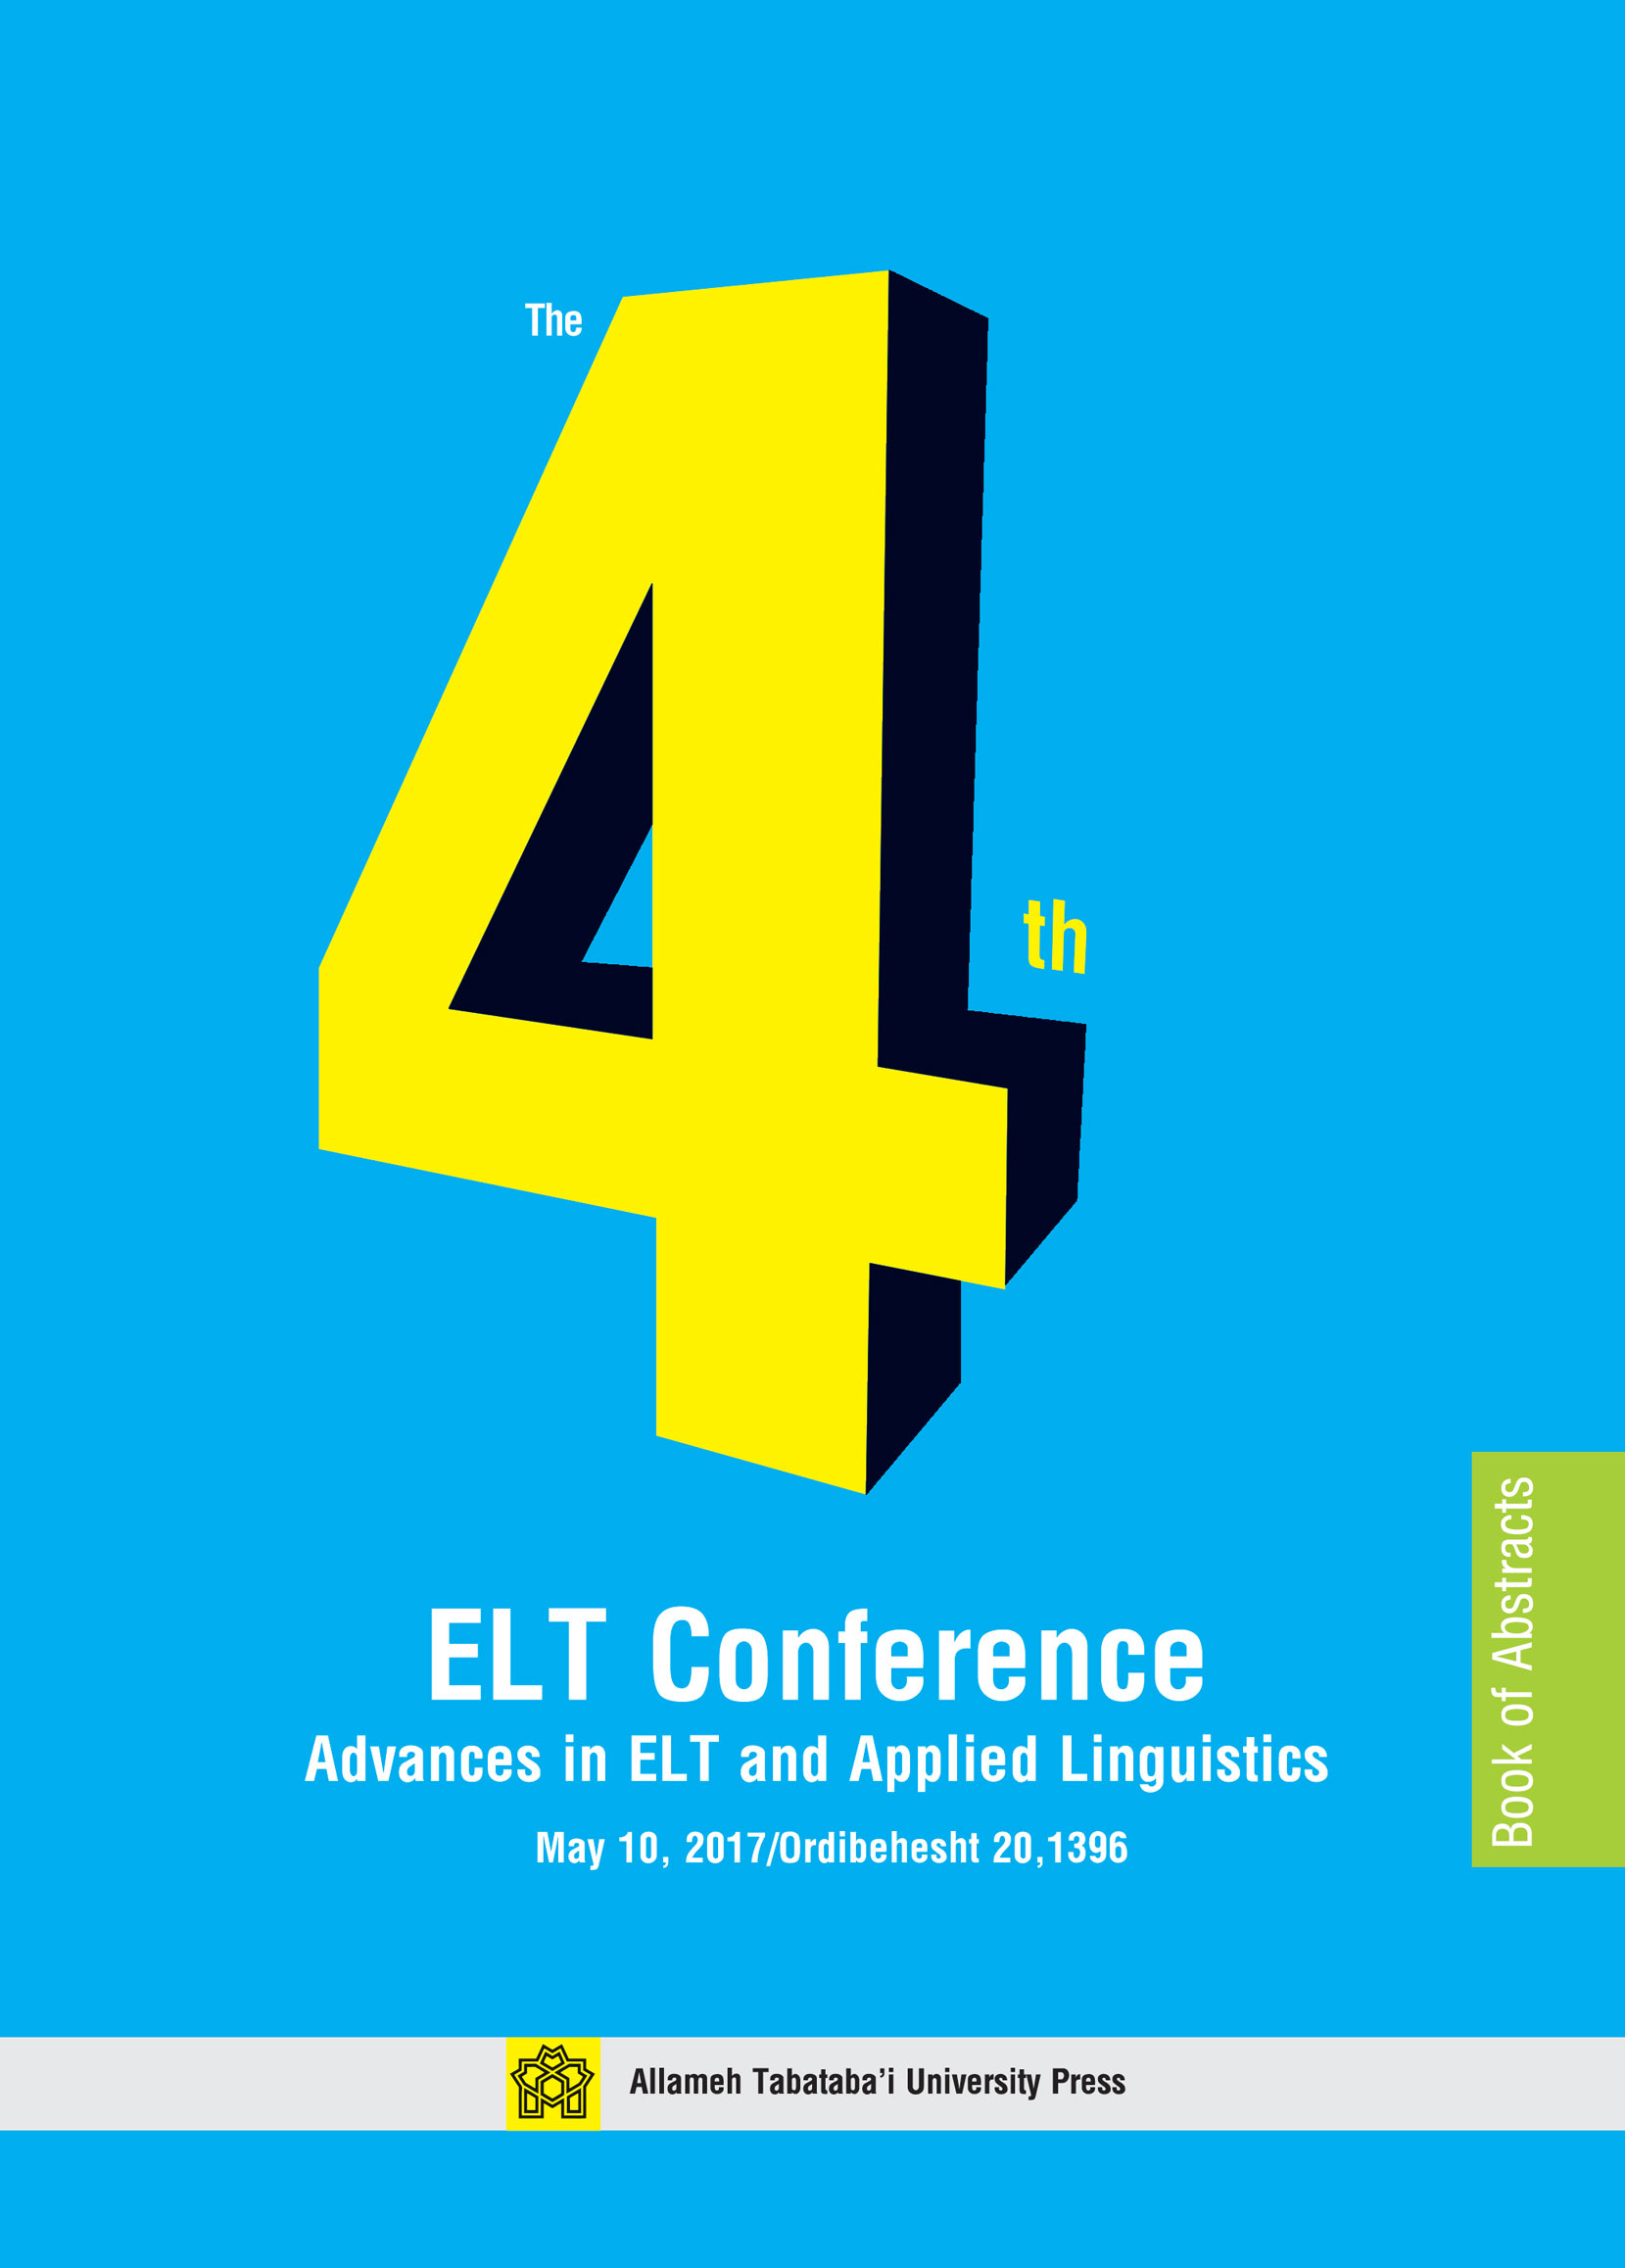 The 4th ELT Conference Advances in ELT and Applied Linguistics